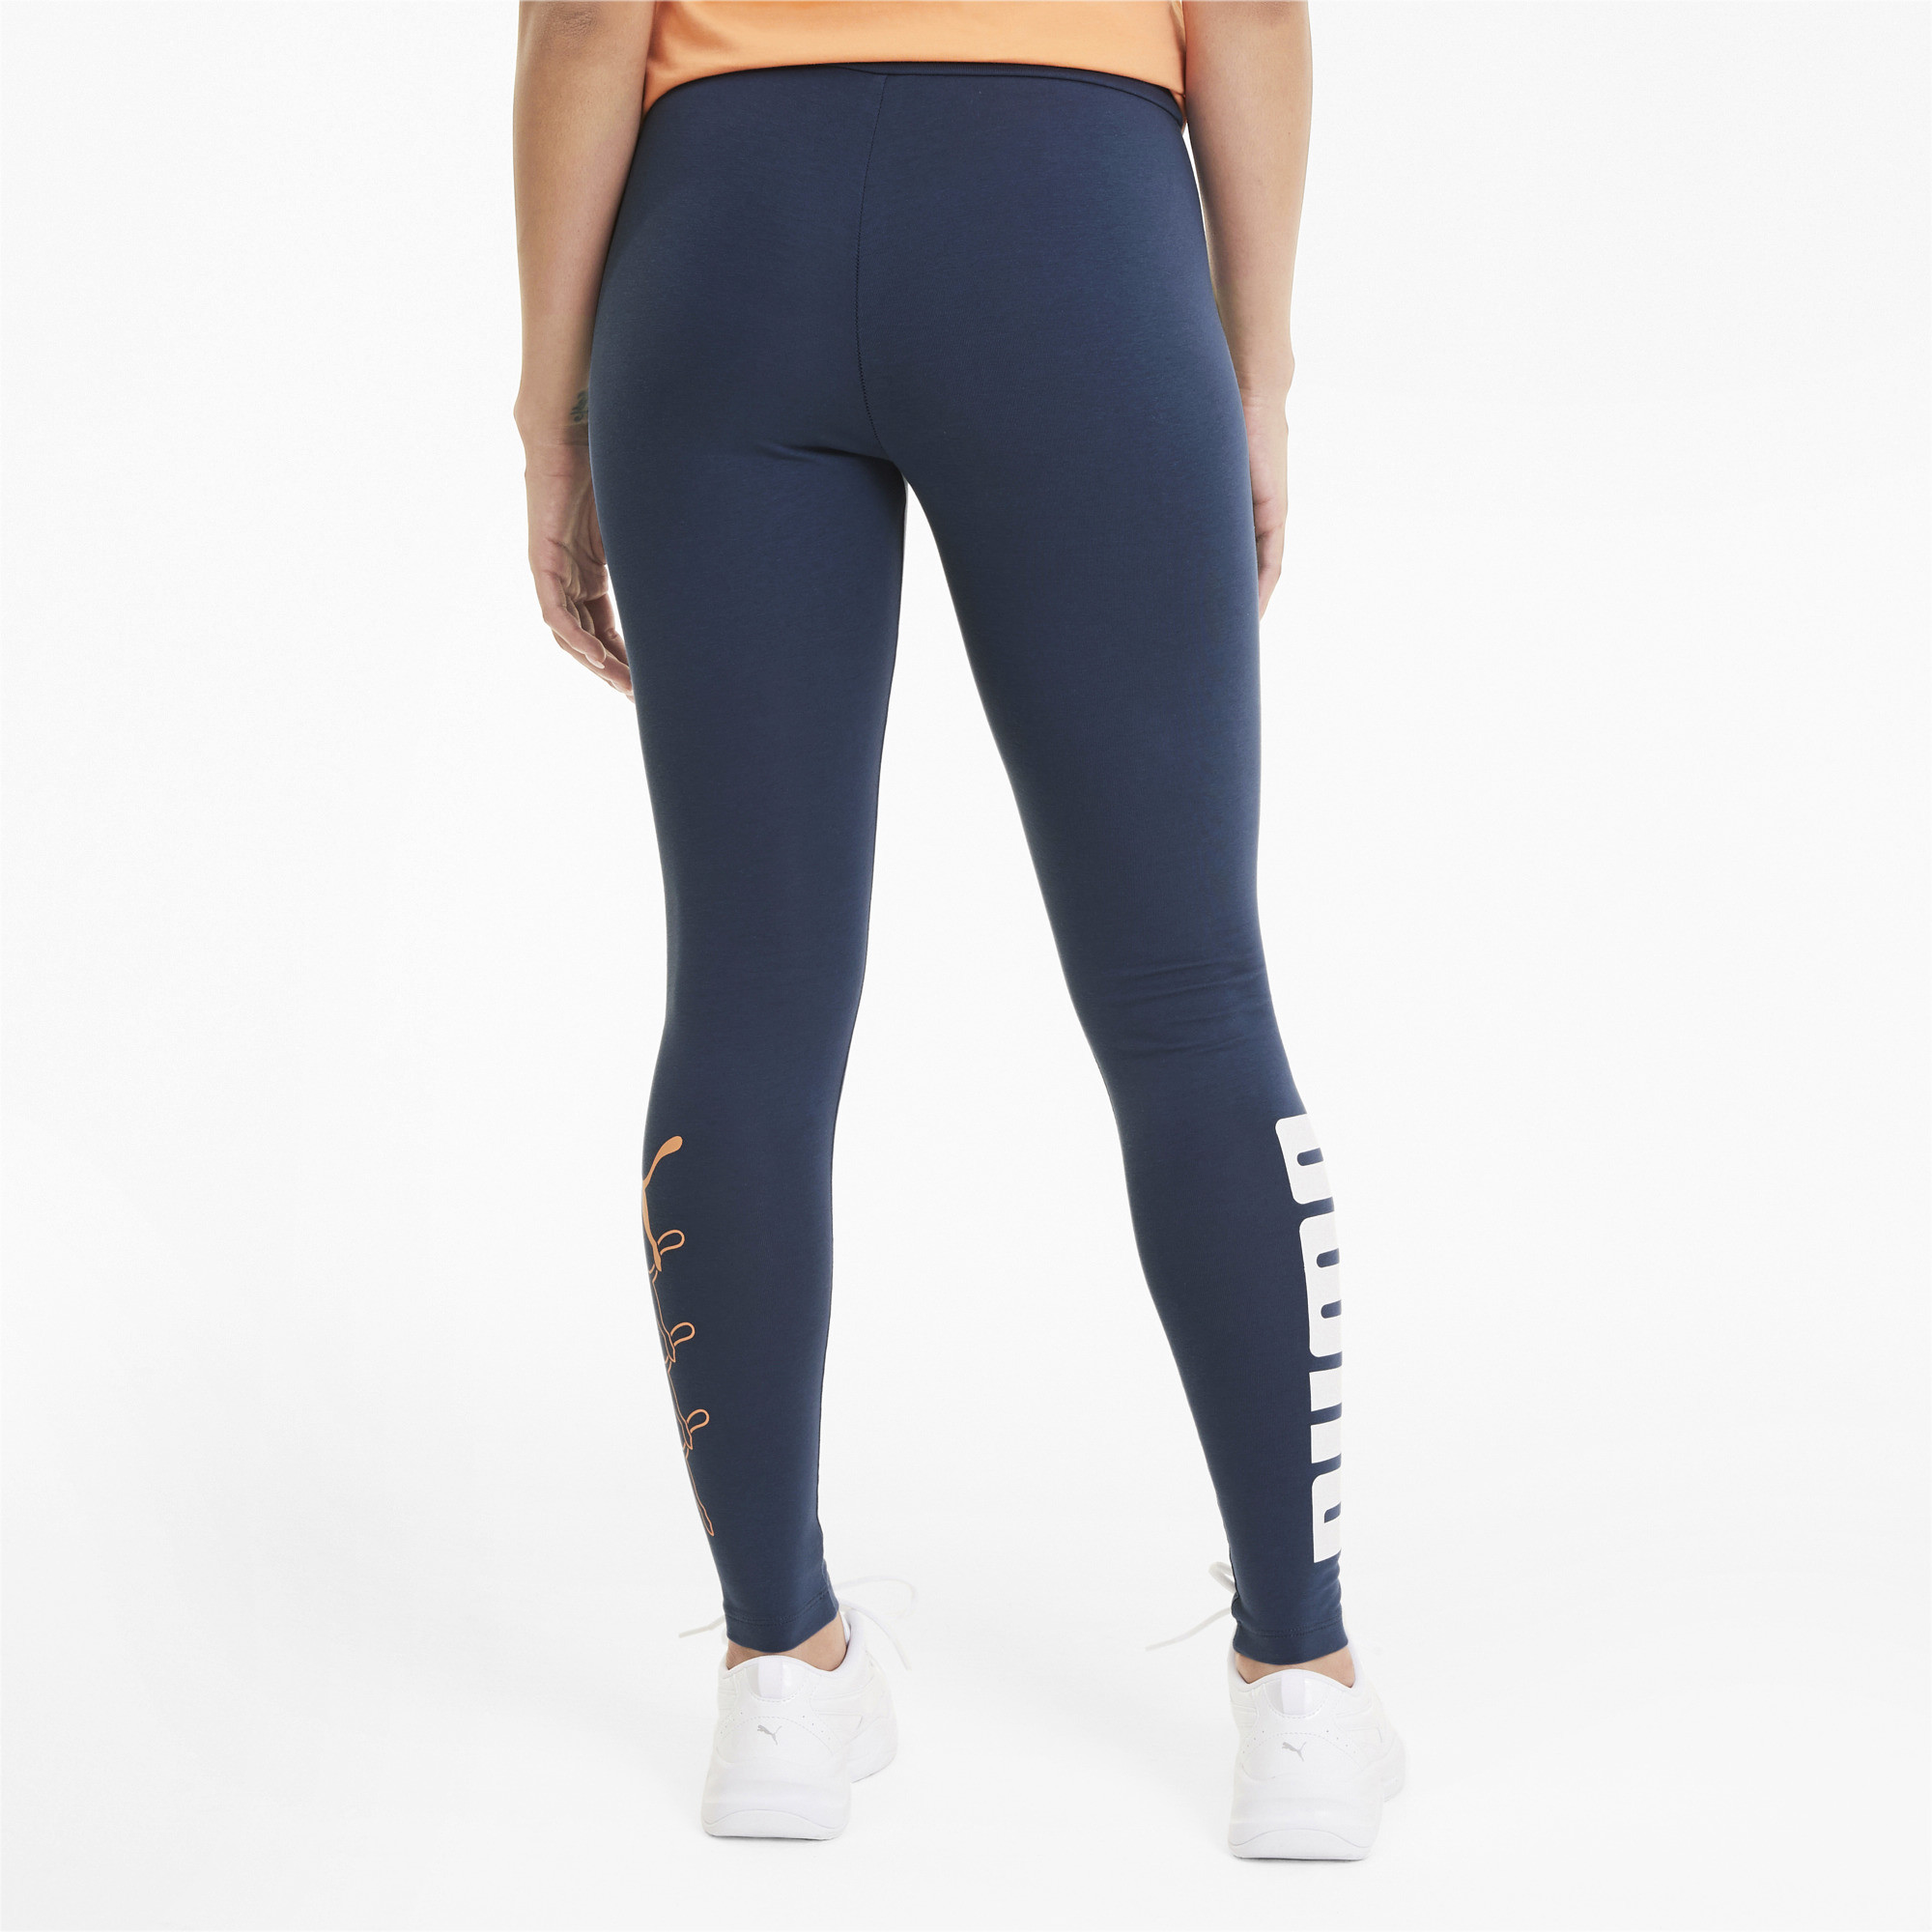 PUMA-Rebel-Women-039-s-Leggings-Women-Basics thumbnail 5